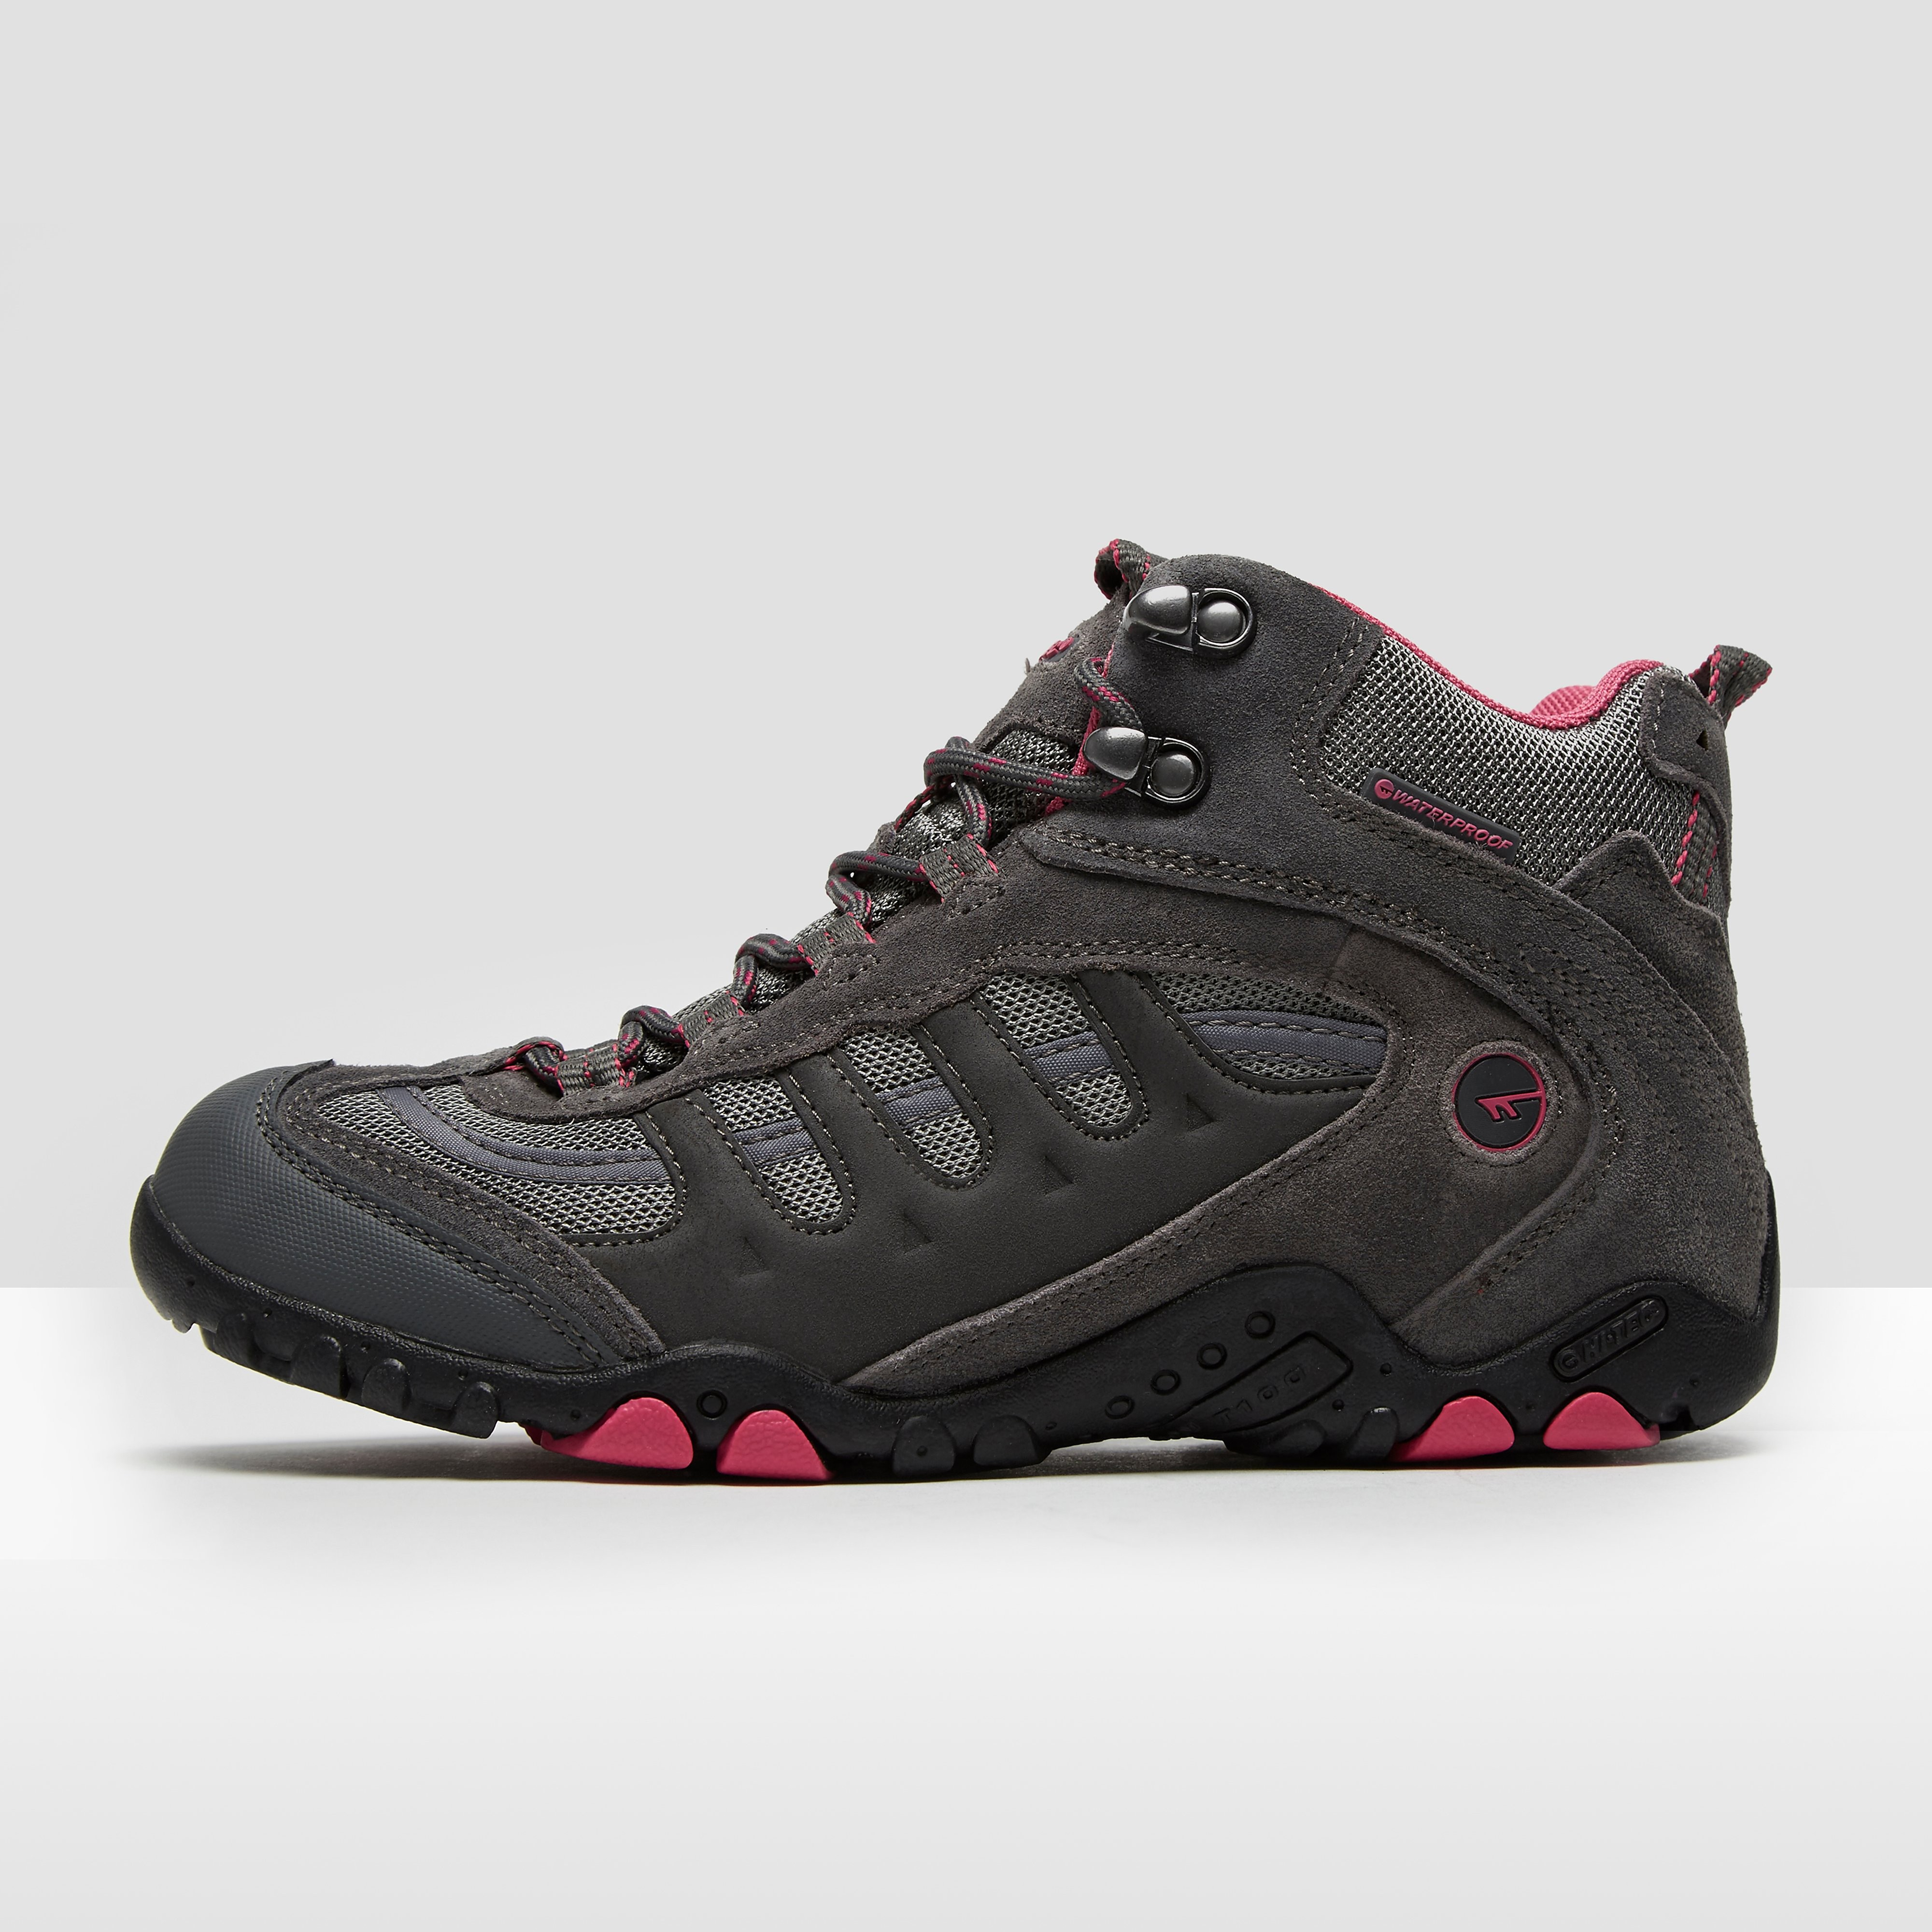 HI TEC Women's Penrith Mid Walking Boots